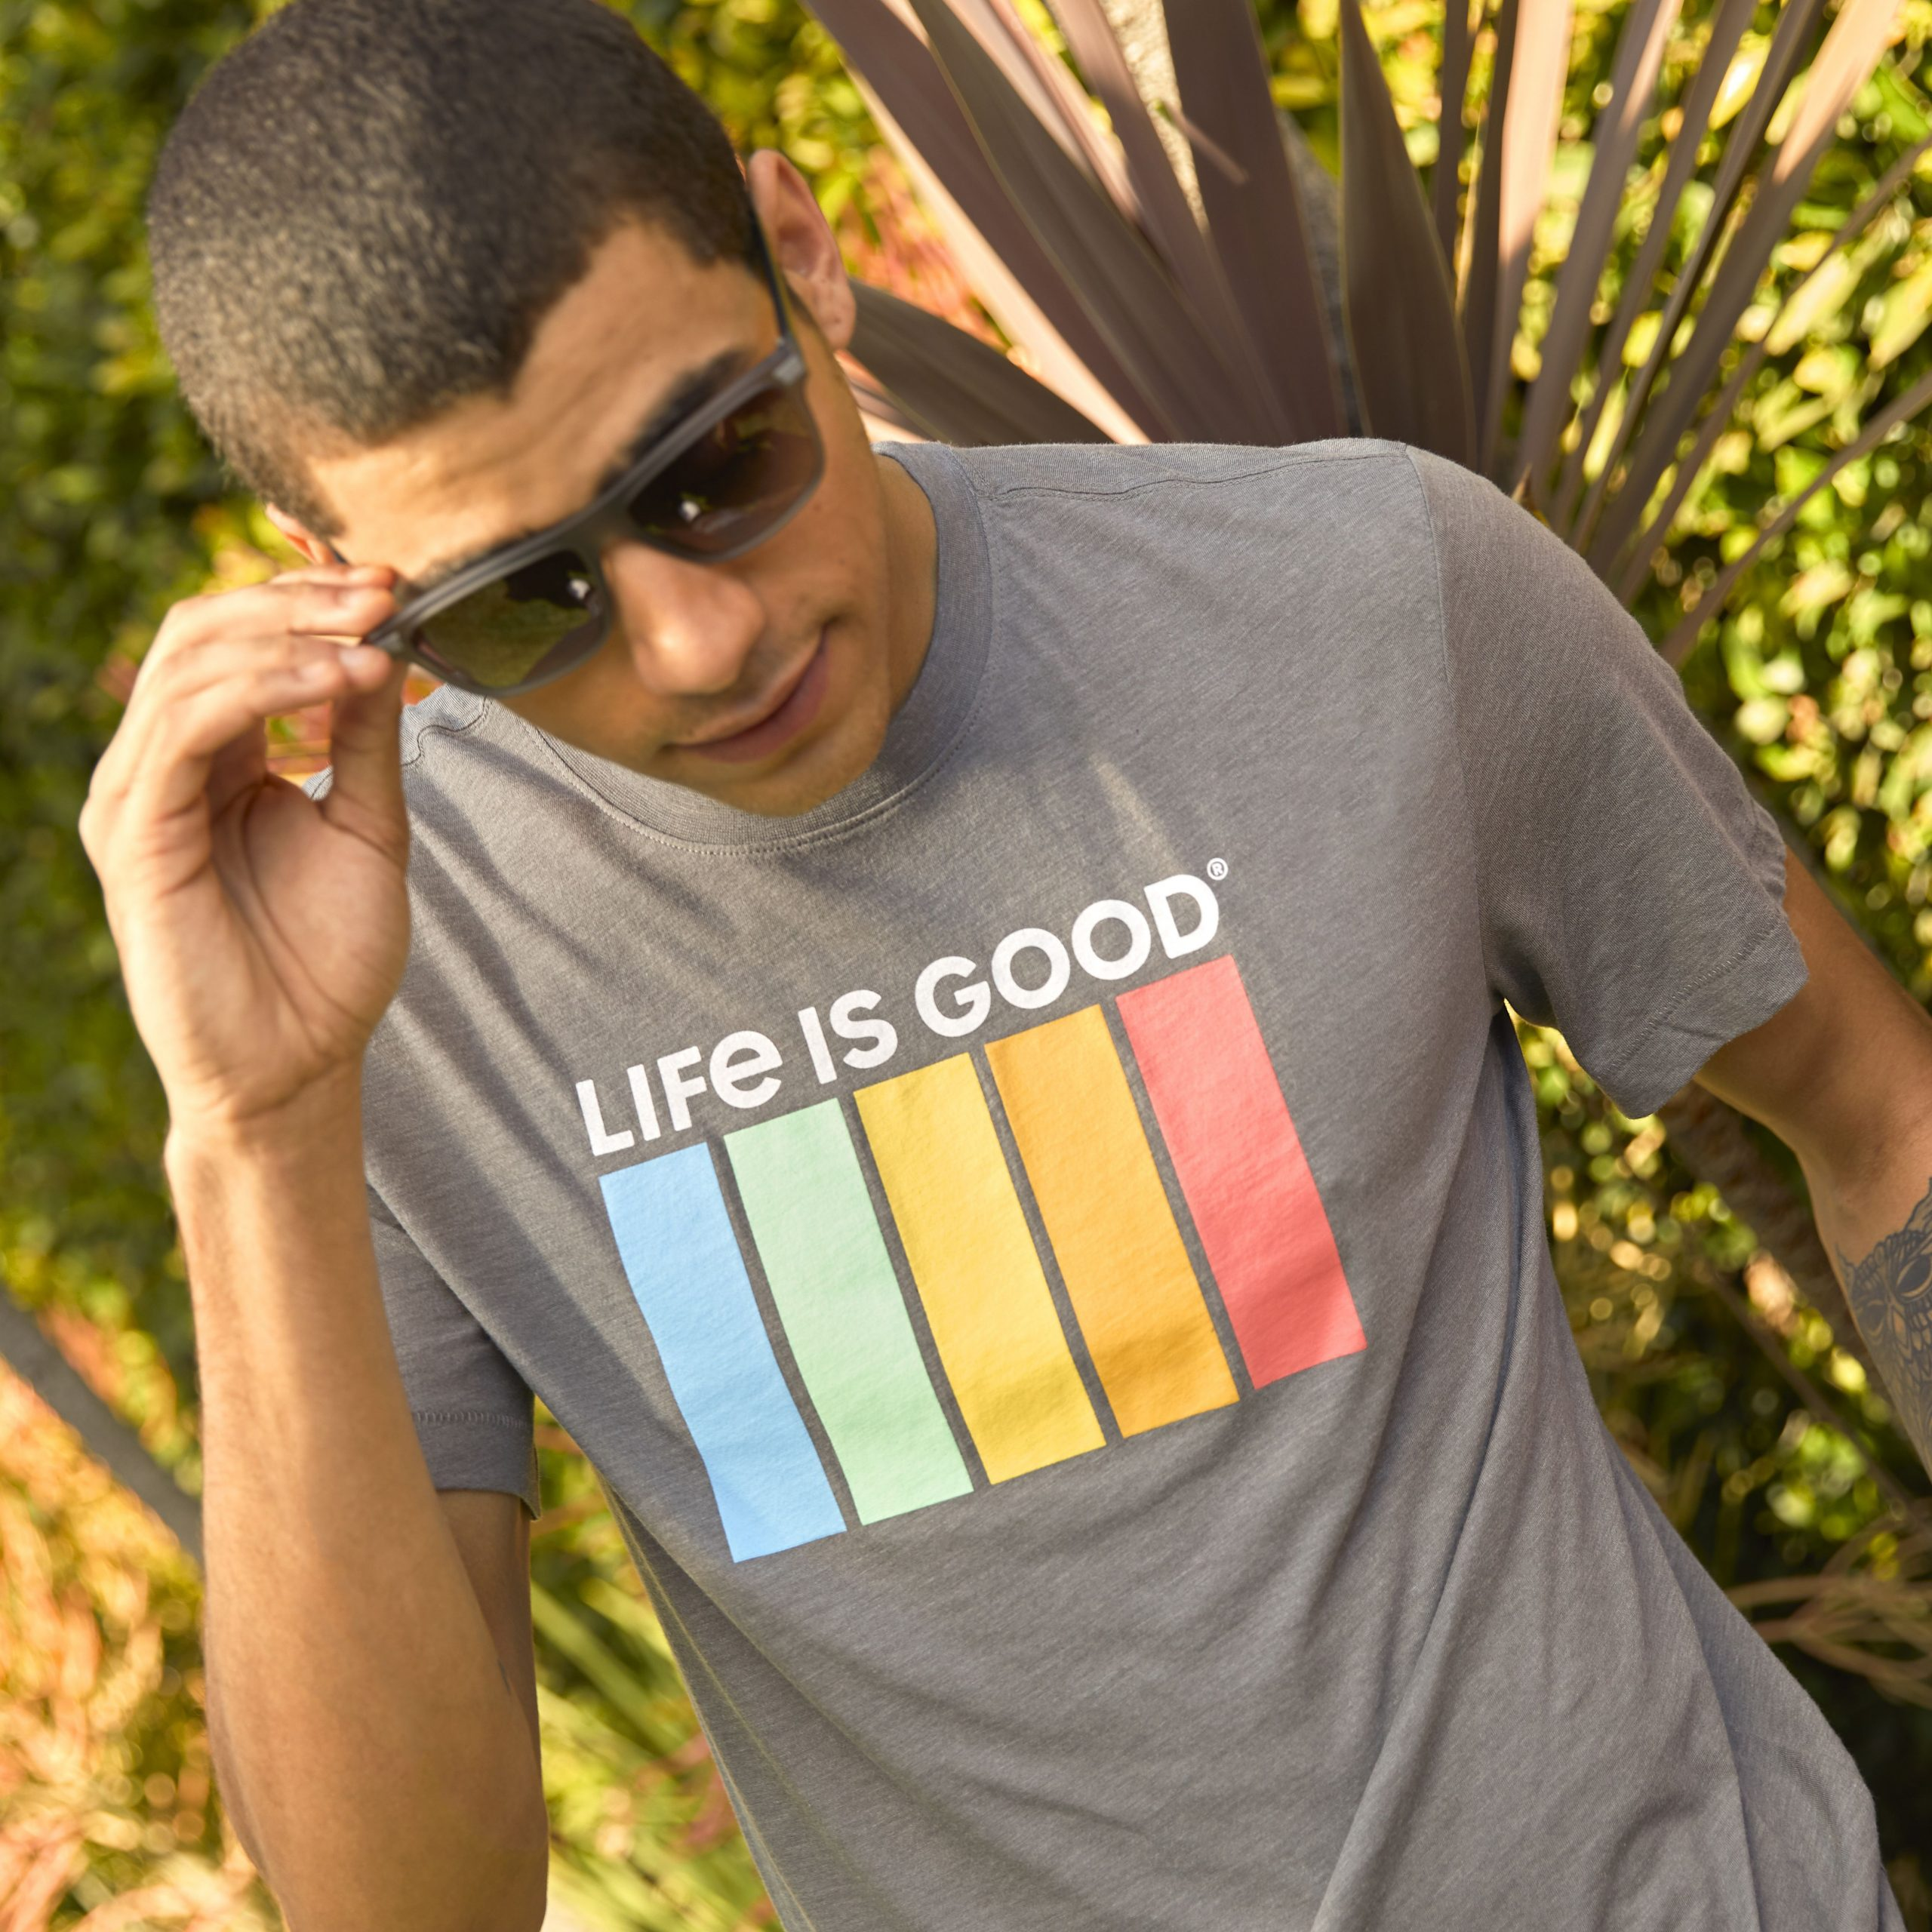 cool kid in shades wearing a Life is Good tee